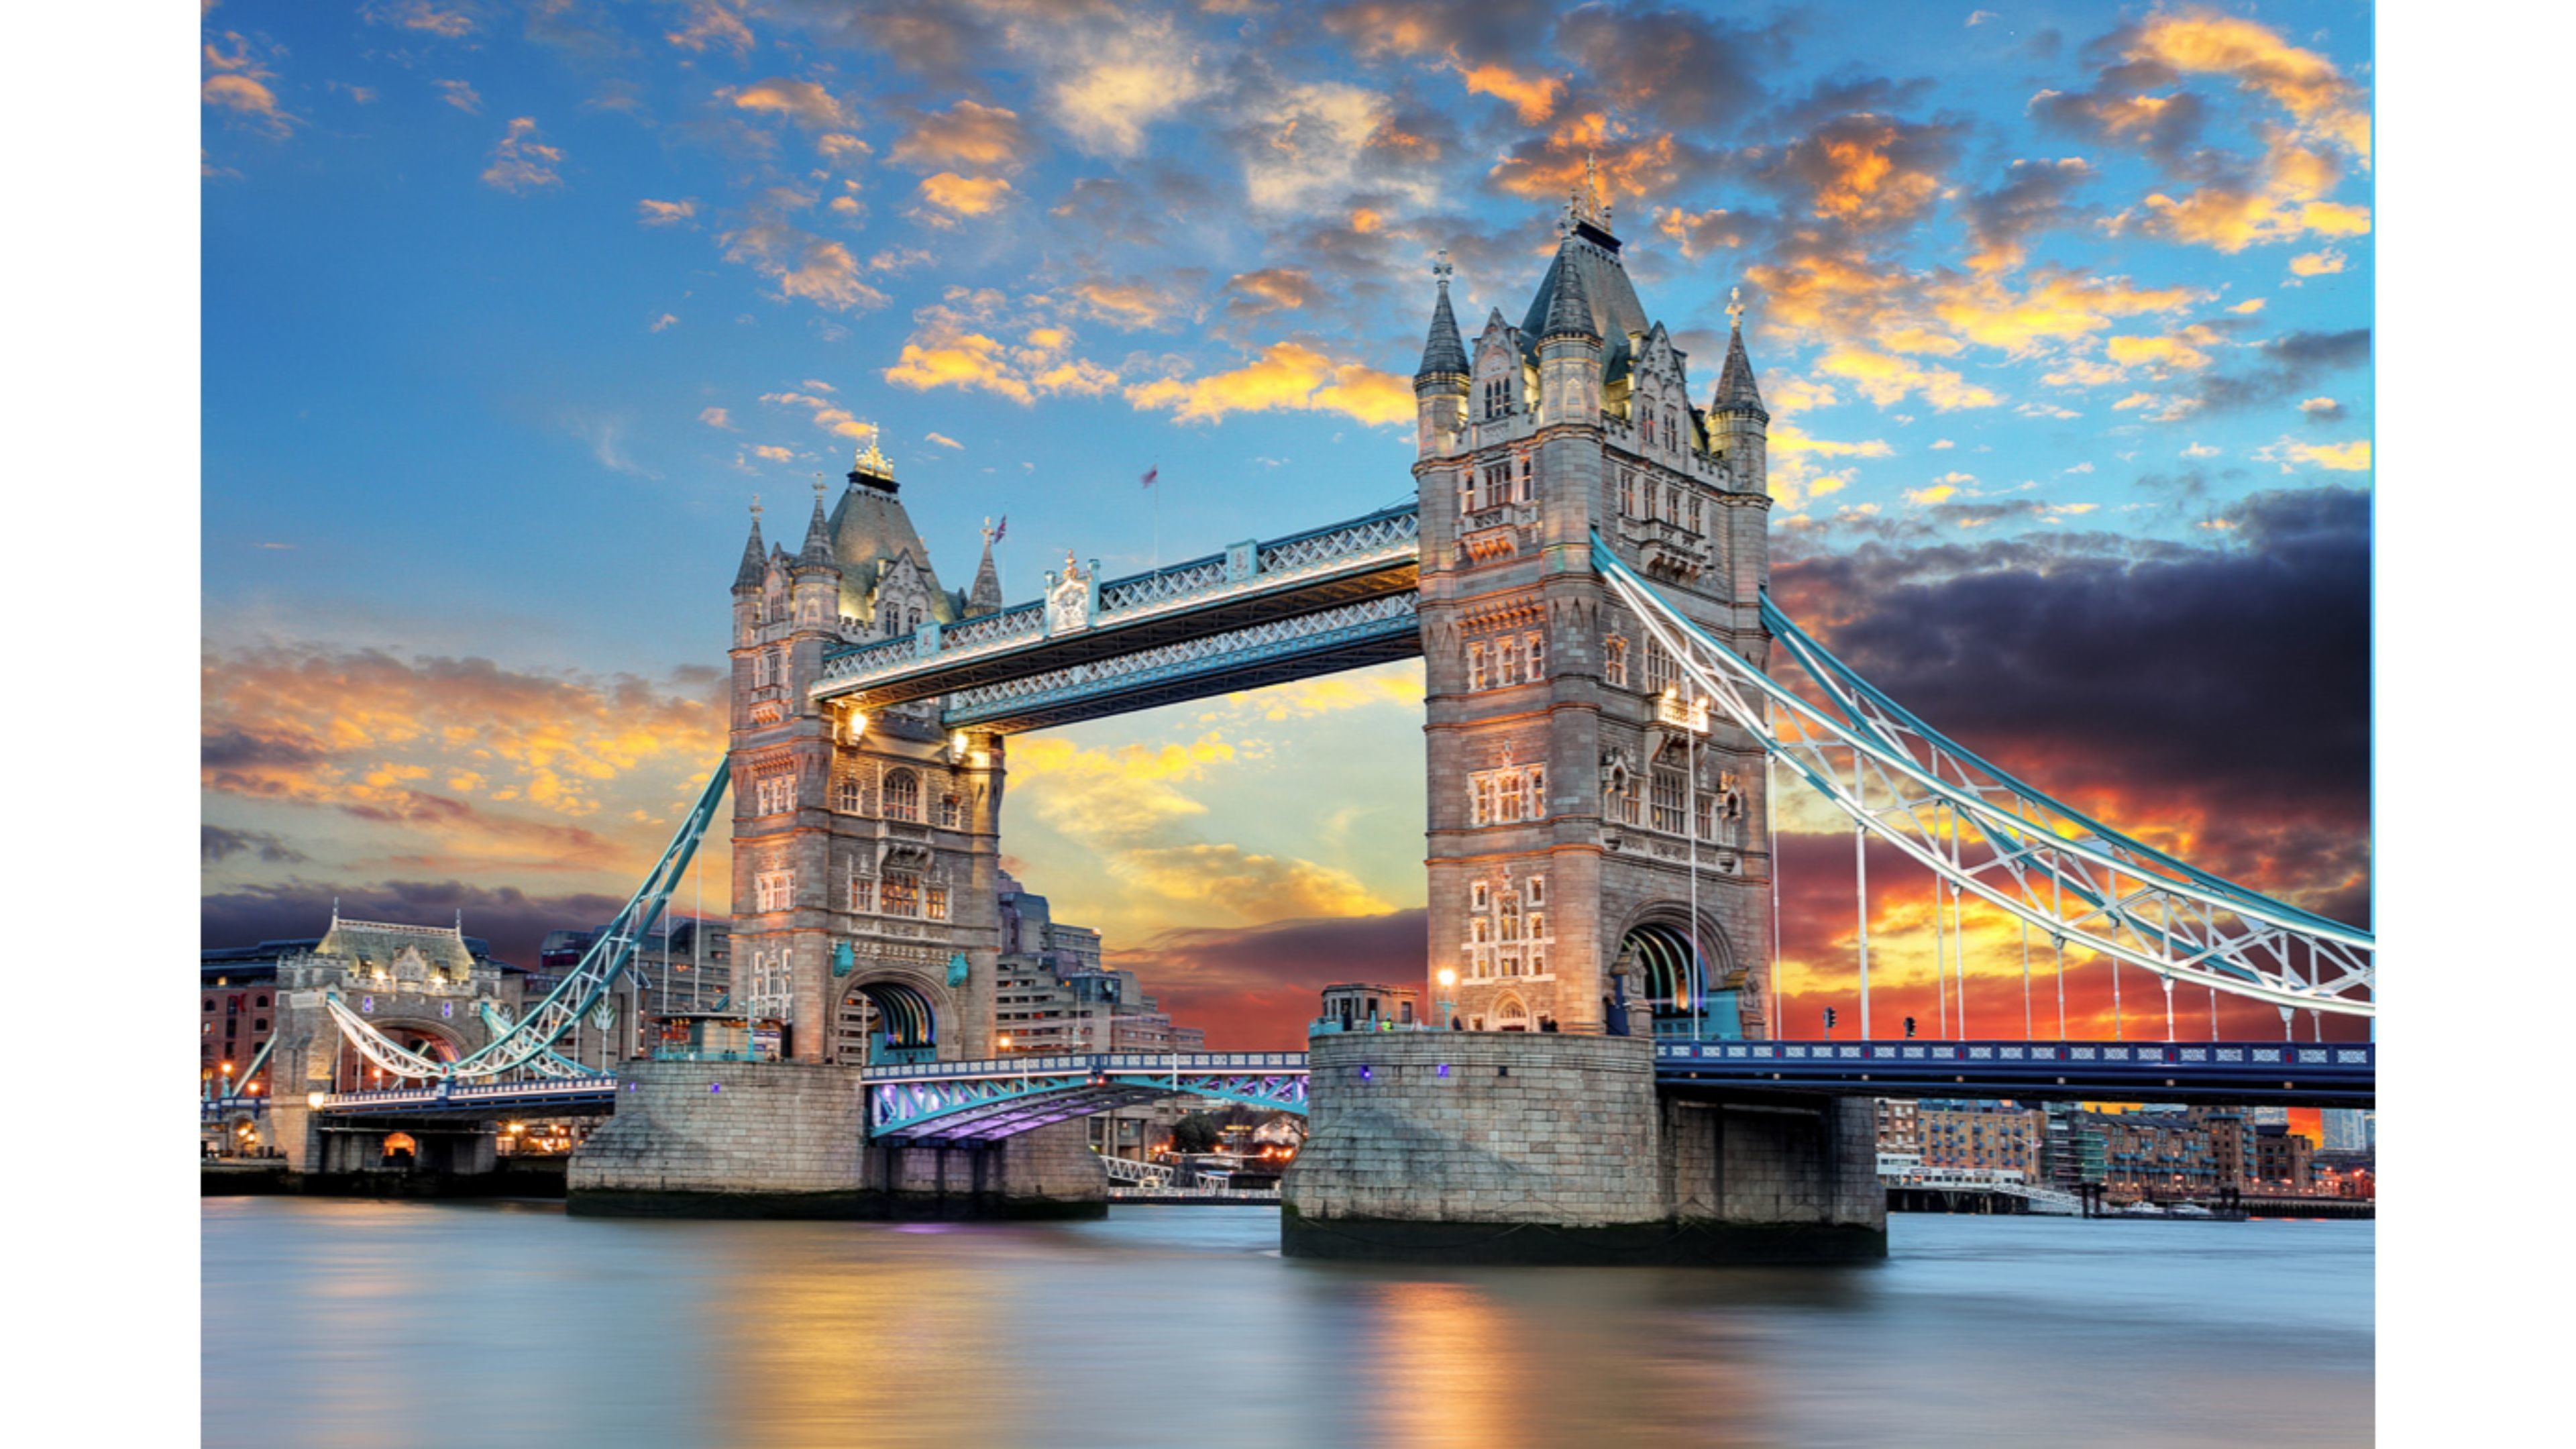 4K London Wallpapers   Top 4K London Backgrounds 3840x2160